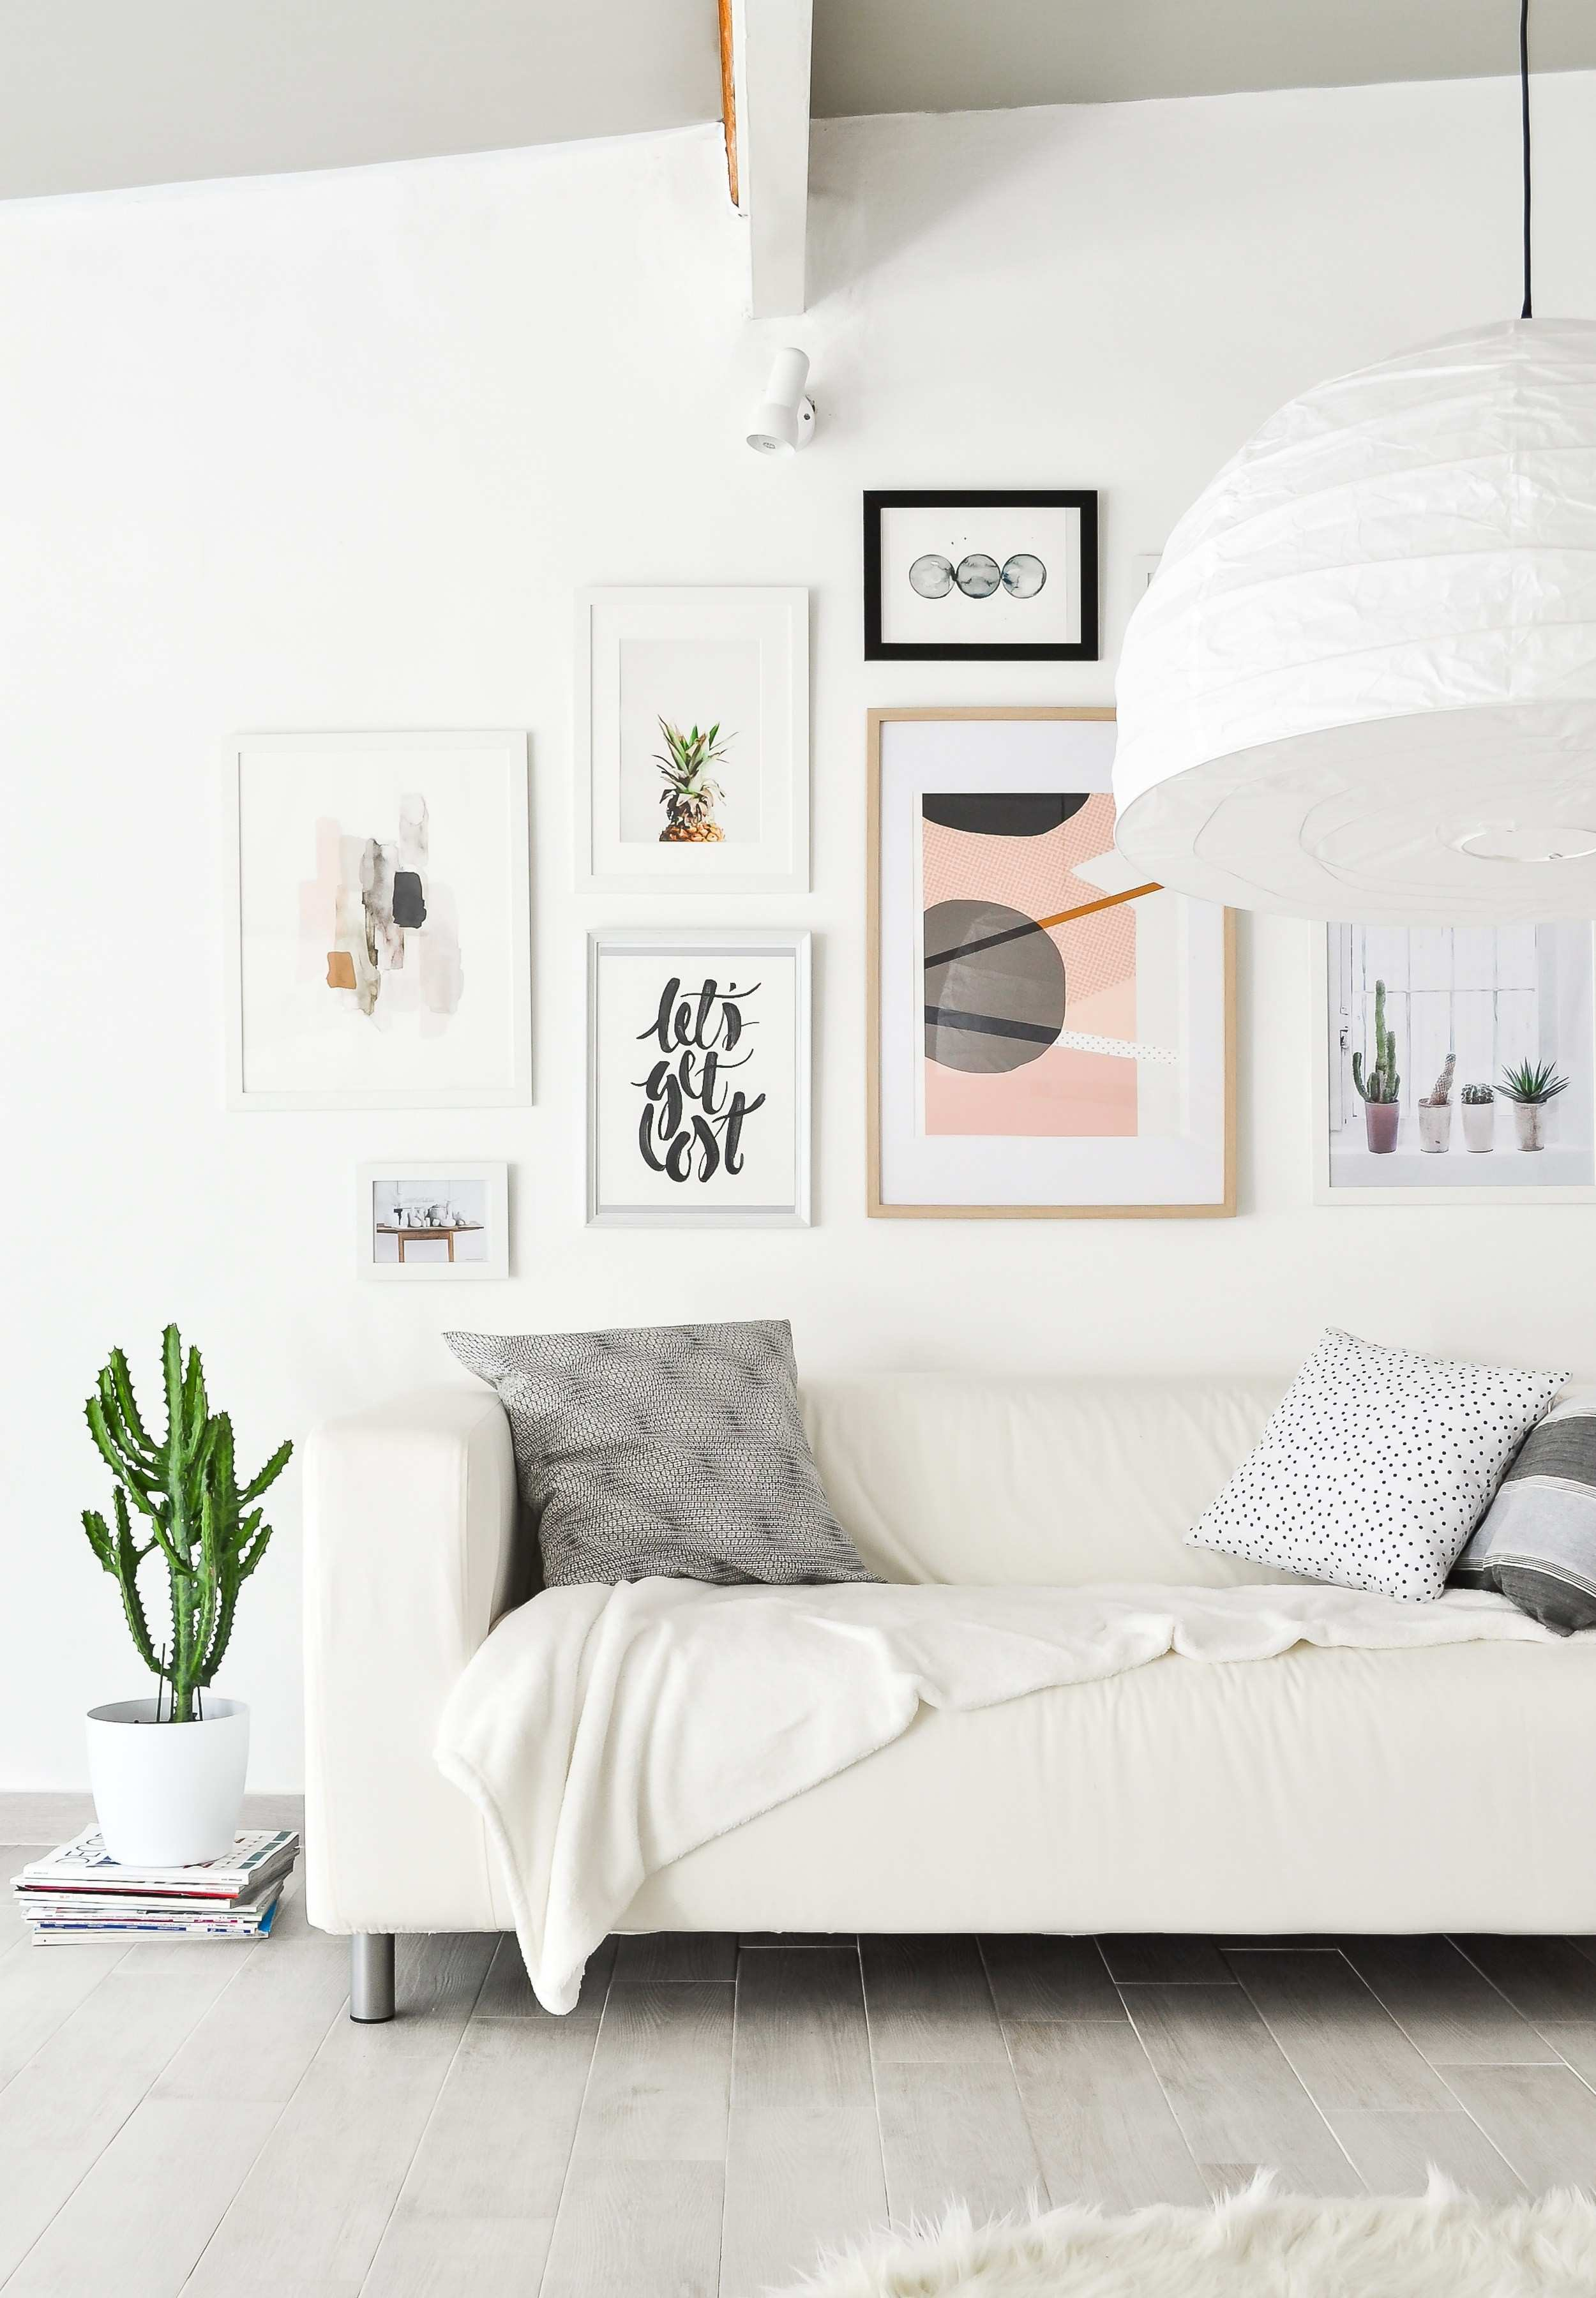 Where to Buy Affordable Art line